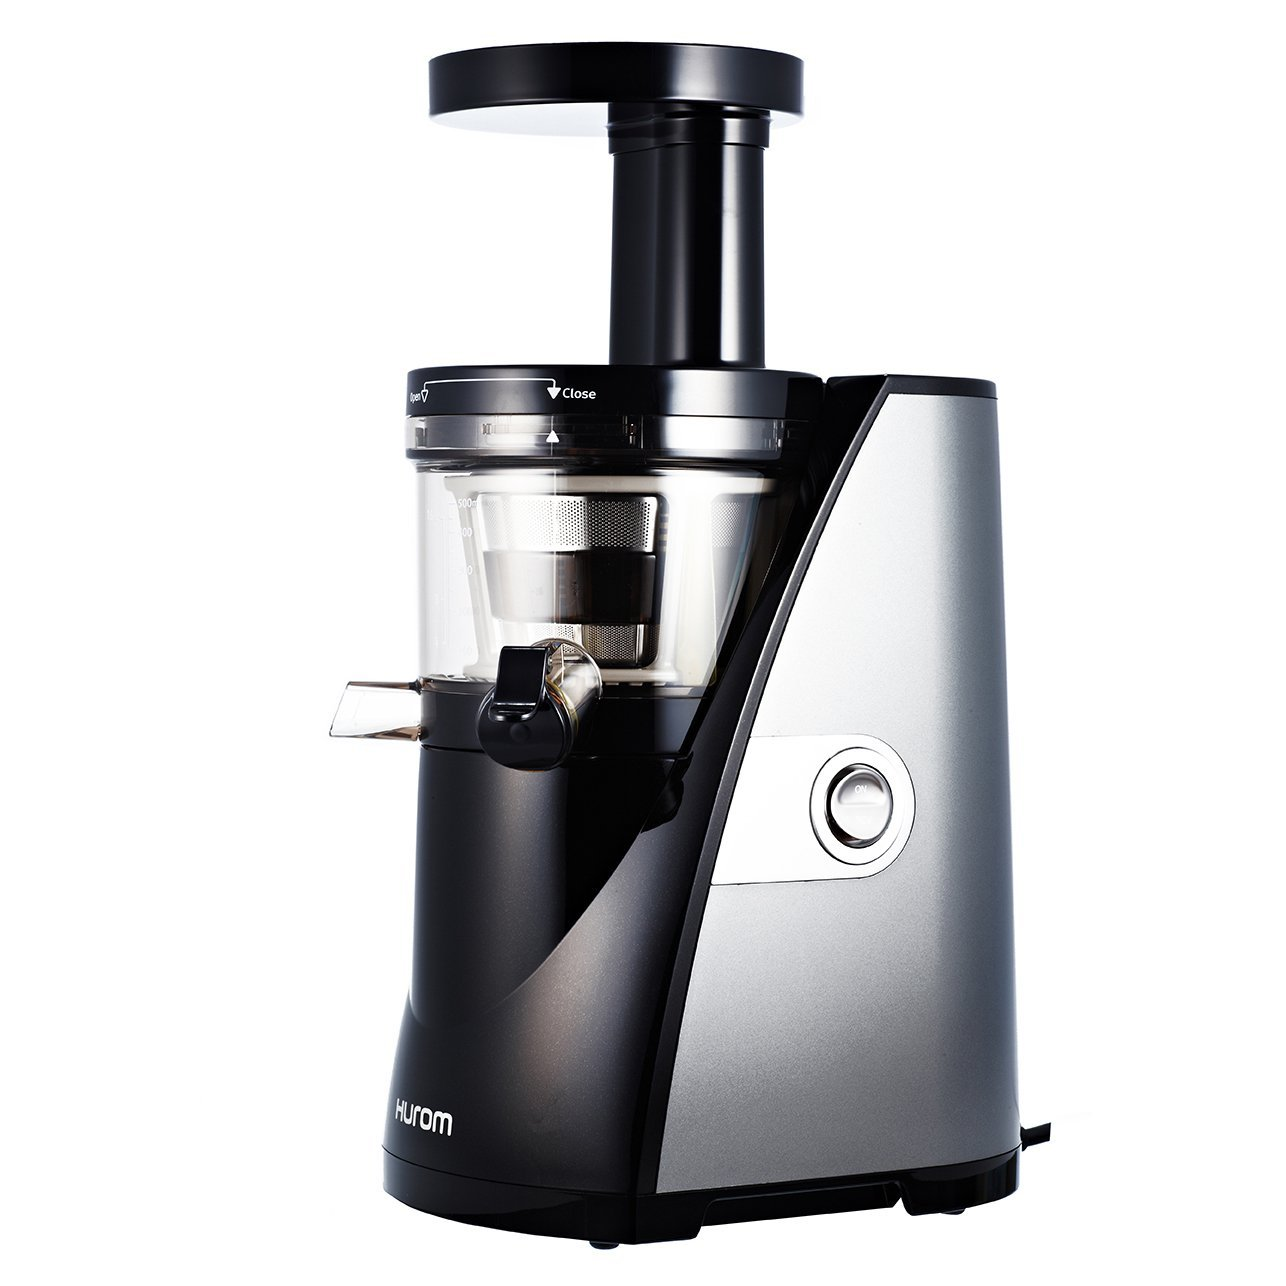 Hurom Slow Juicer Guarantee : 5 Best Hurom Juicer Reviews UPDATED: 2018 The Home Savant